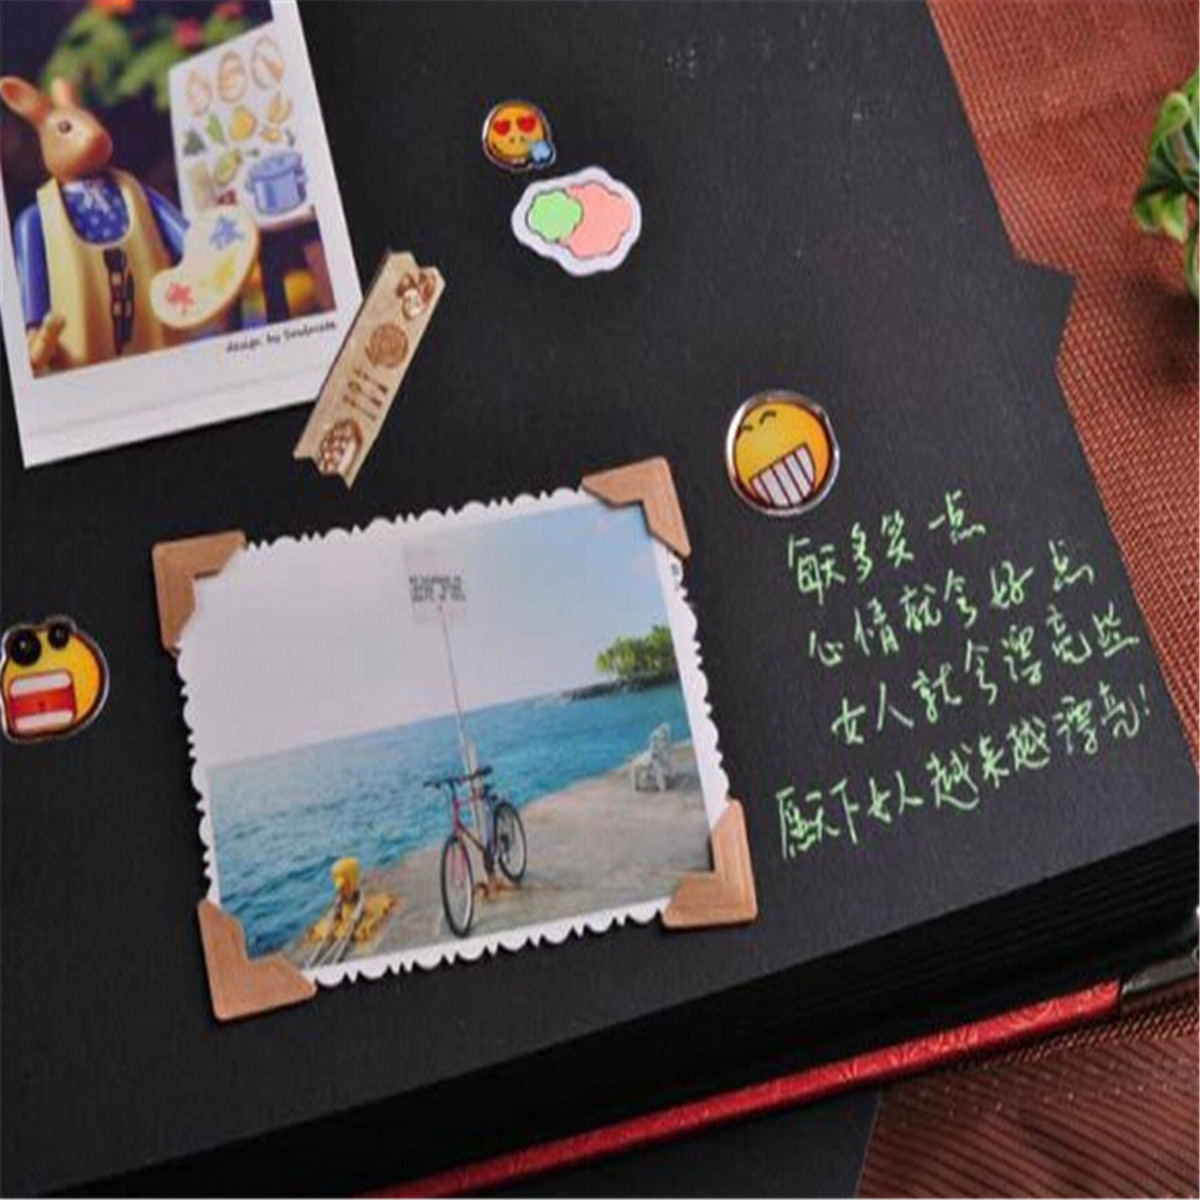 New Diy Handmade Creative Albums Romantic Souvenir: DIY Retro Photo Albums Handmade Manual Creative Couple